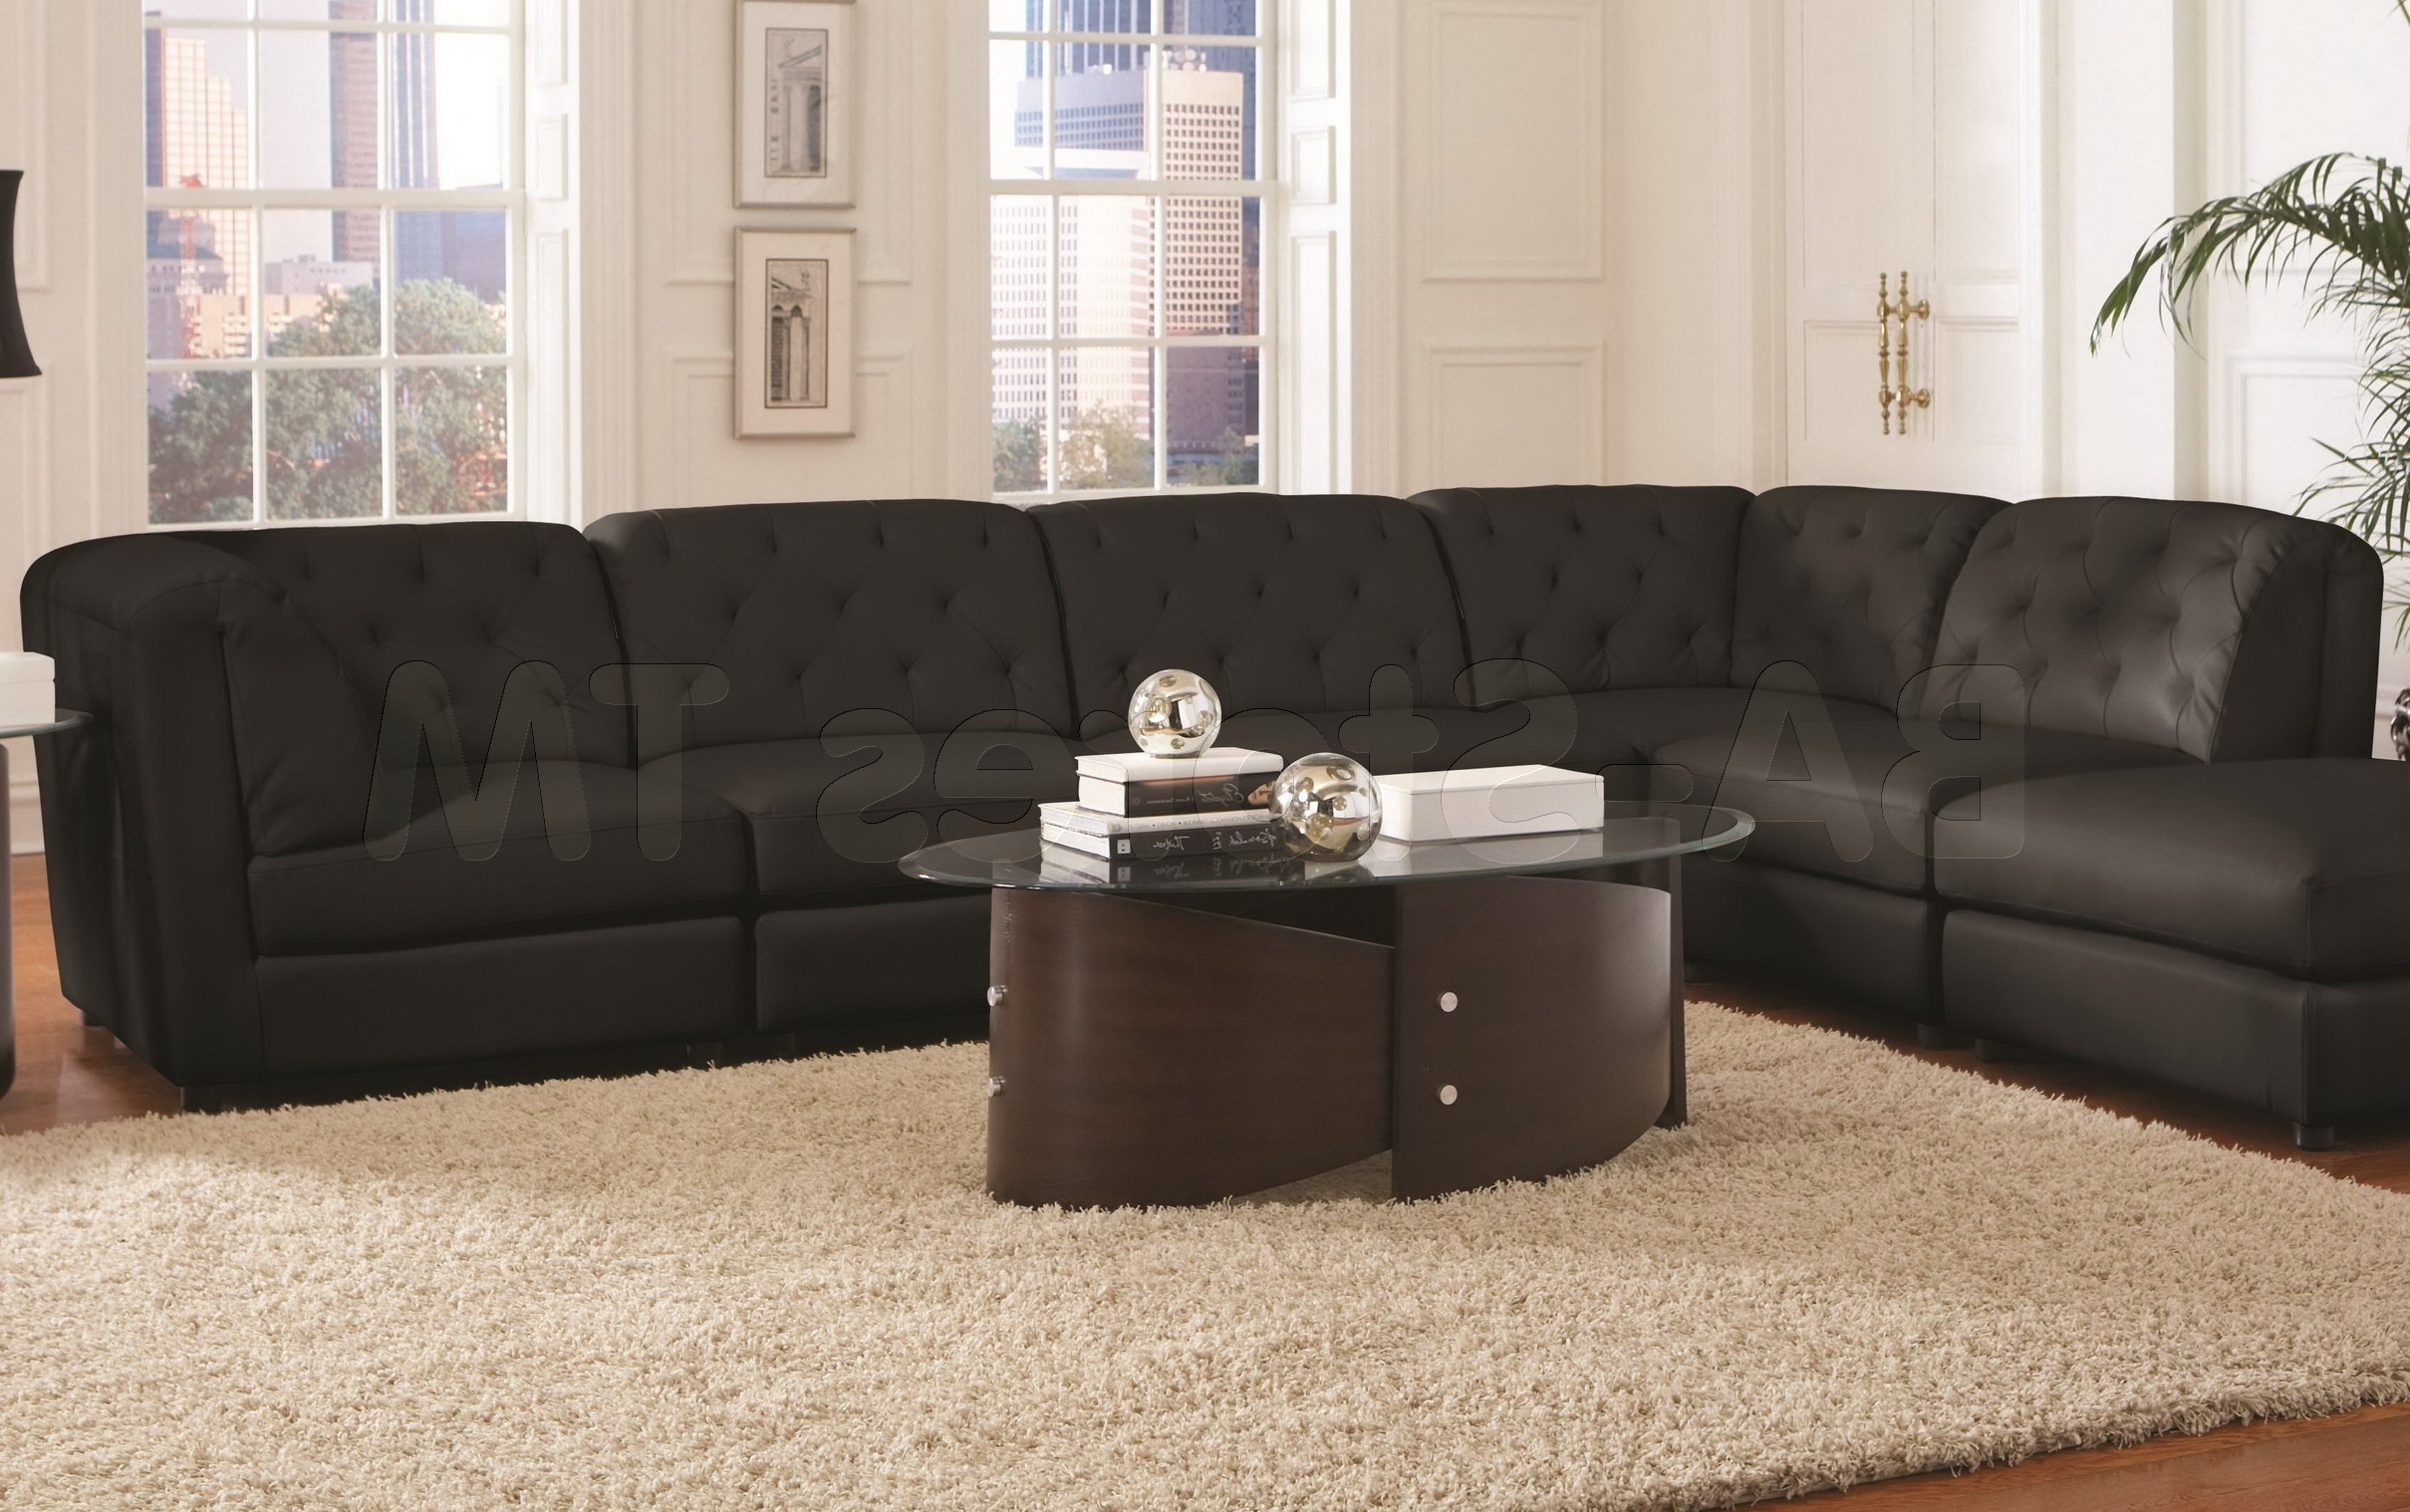 Newest Wide Seat Sectional Sofas With Regard To Couch (View 12 of 20)